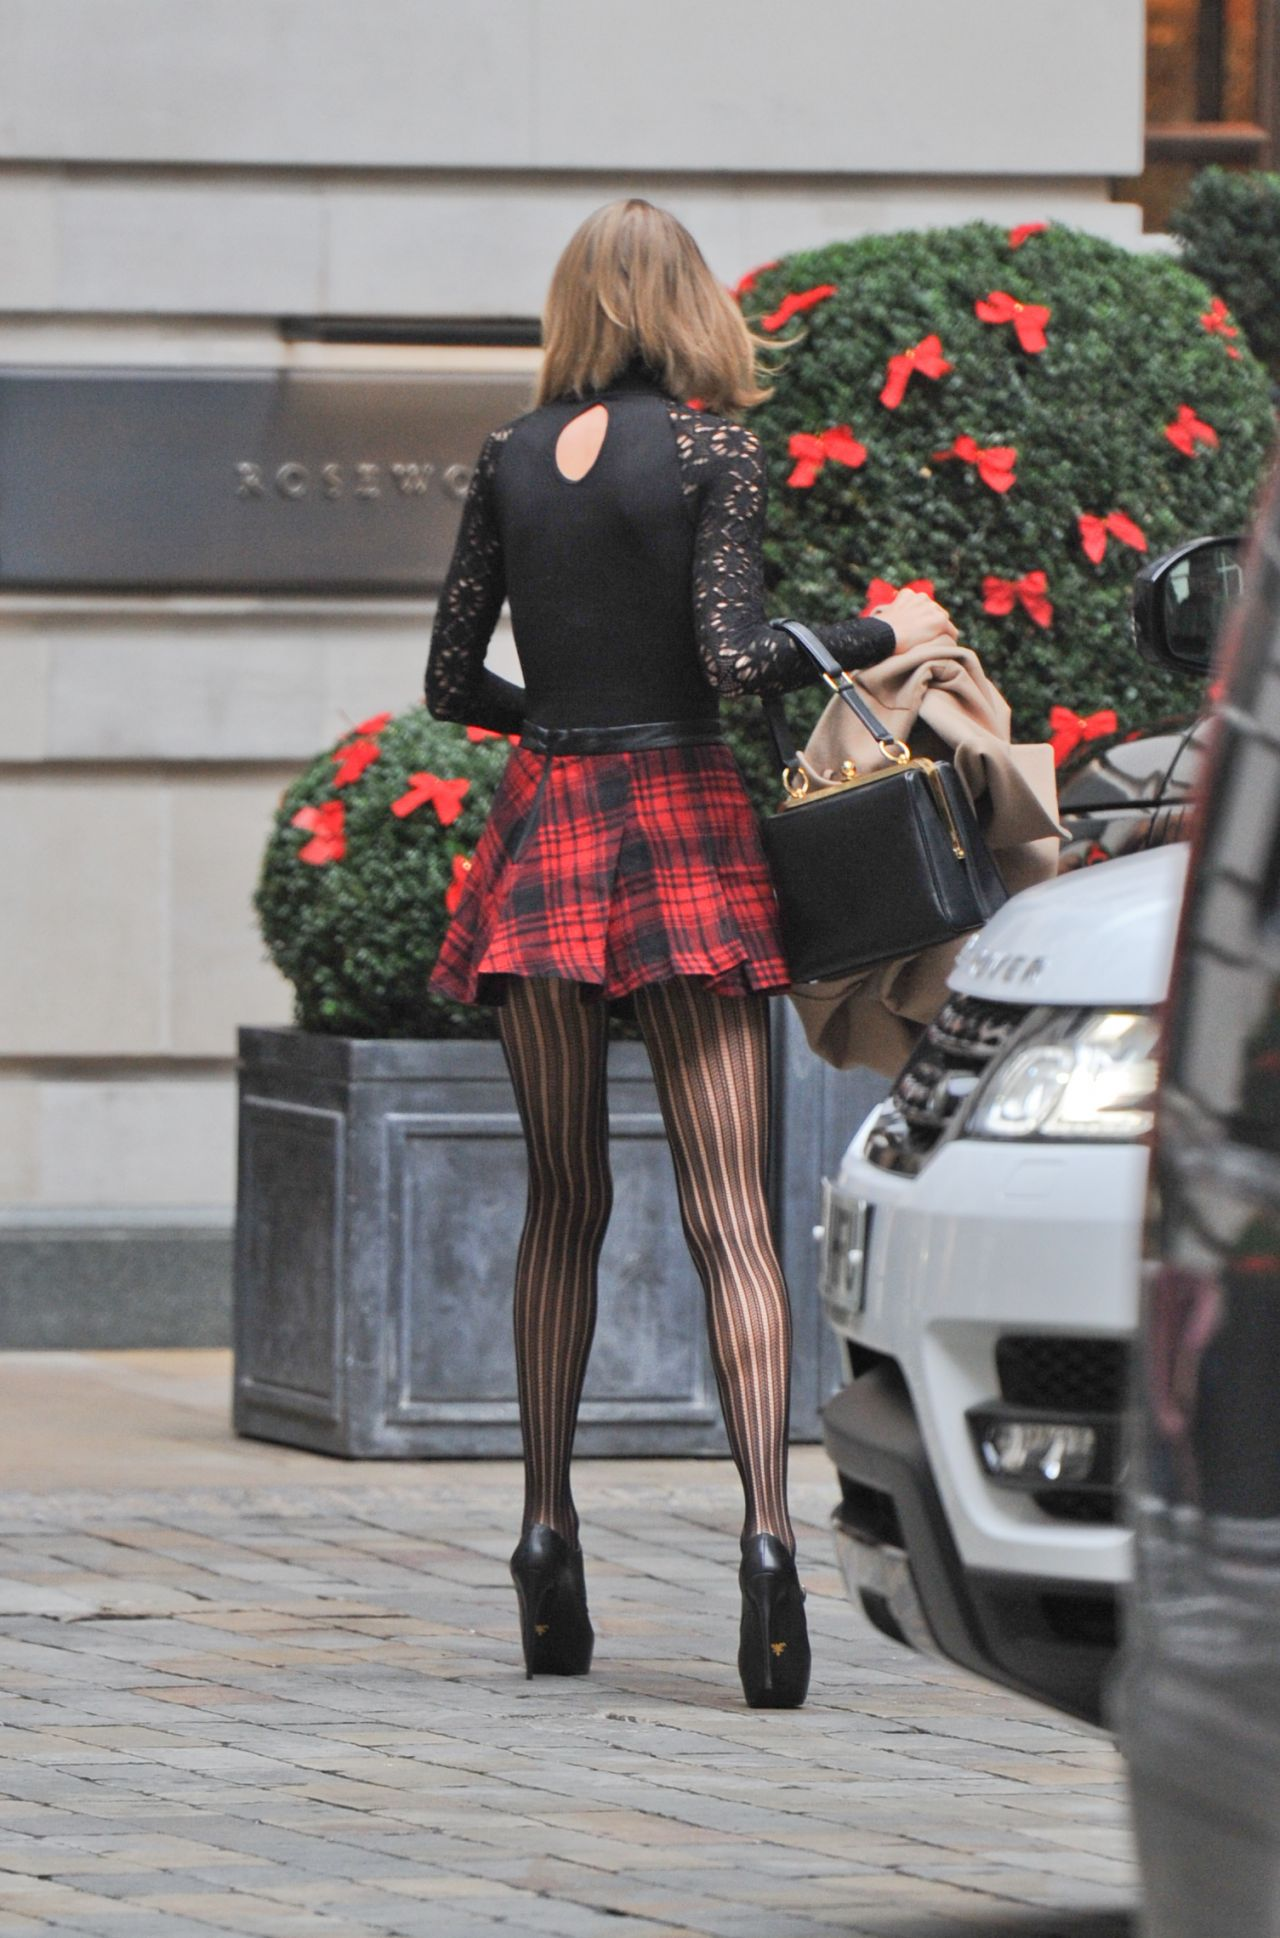 Taylor Swift Leggy  Arriving at Her Hotel in London